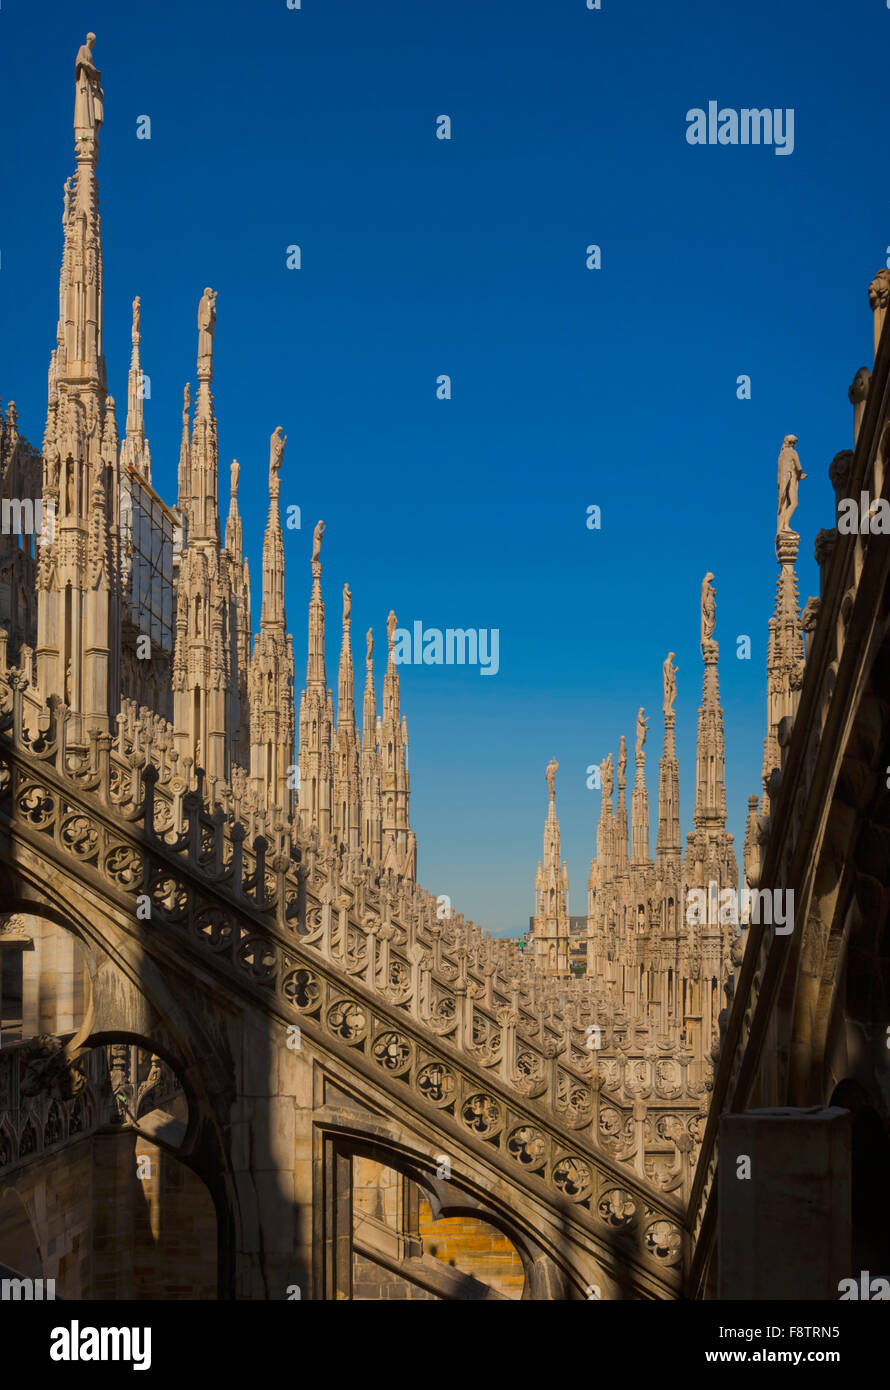 Milan, Milan Province, Lombardy, Italy.  Spires on the roof of the Duomo, or cathedral. - Stock Image